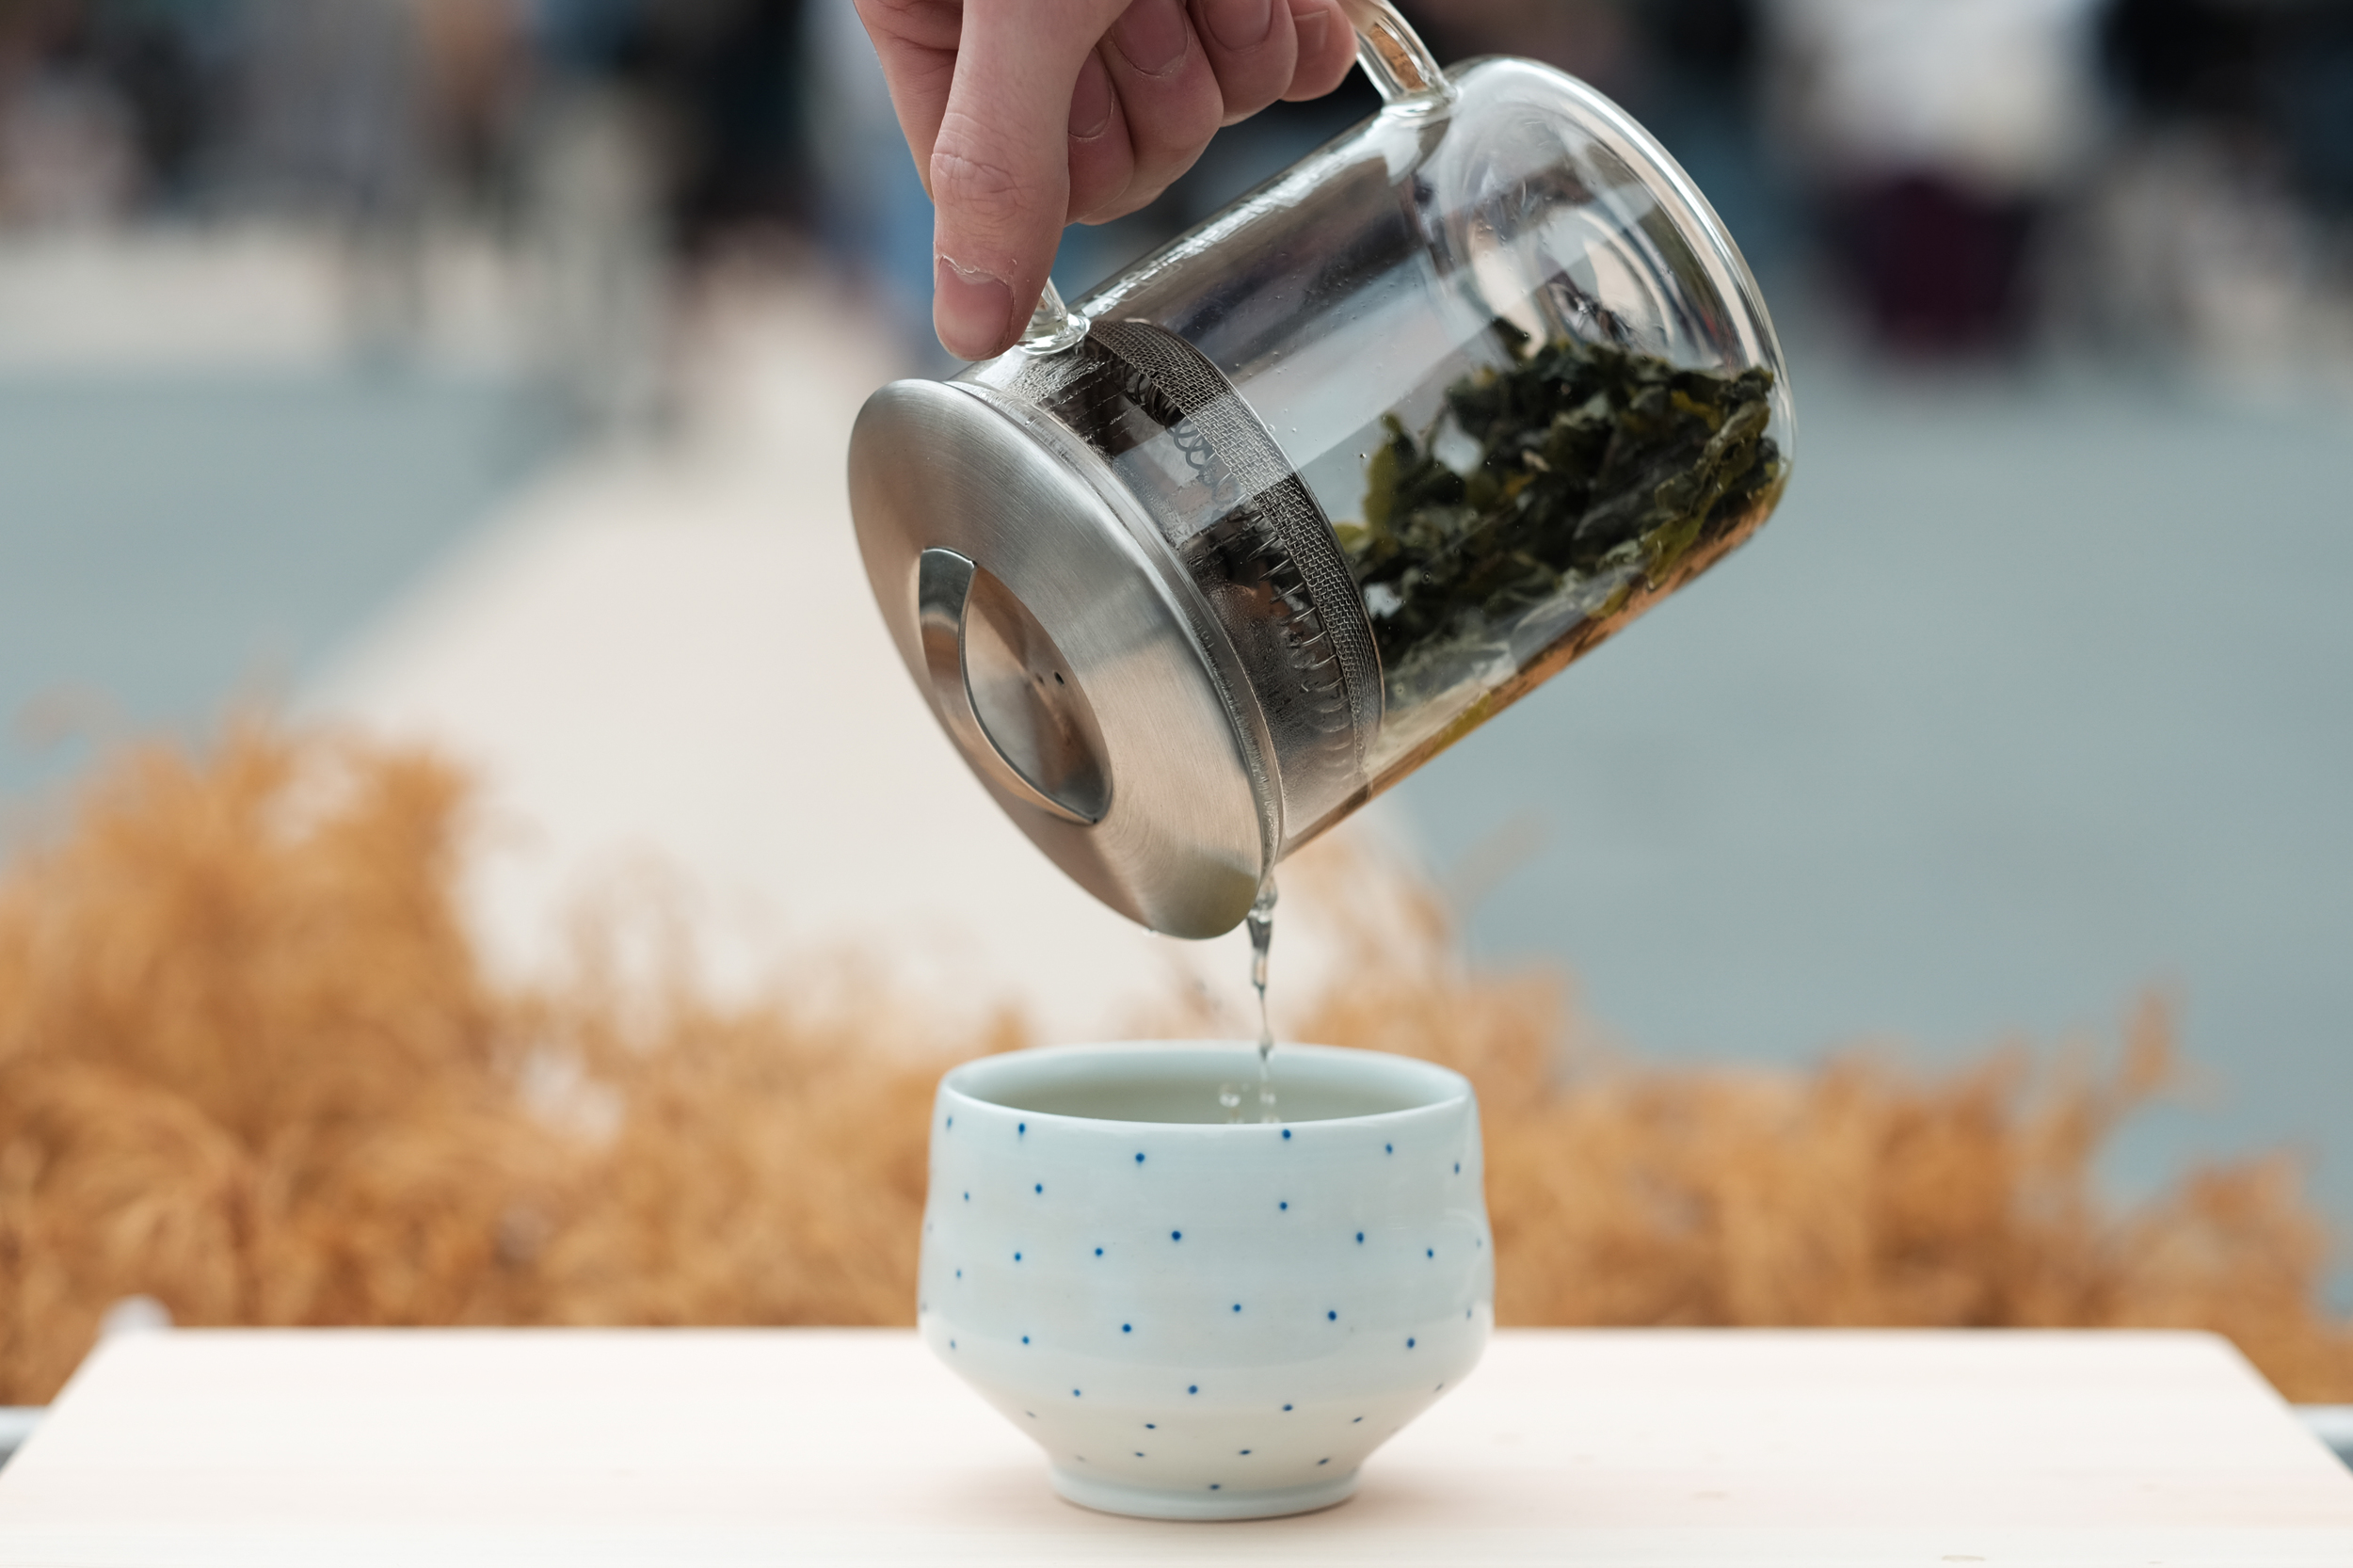 Next-level Tea  Tea People is about one simple thing: making next-level quality tea accessible.We buy in small batches from farmers around the globe to ensure maximum freshness and quality in every cup.